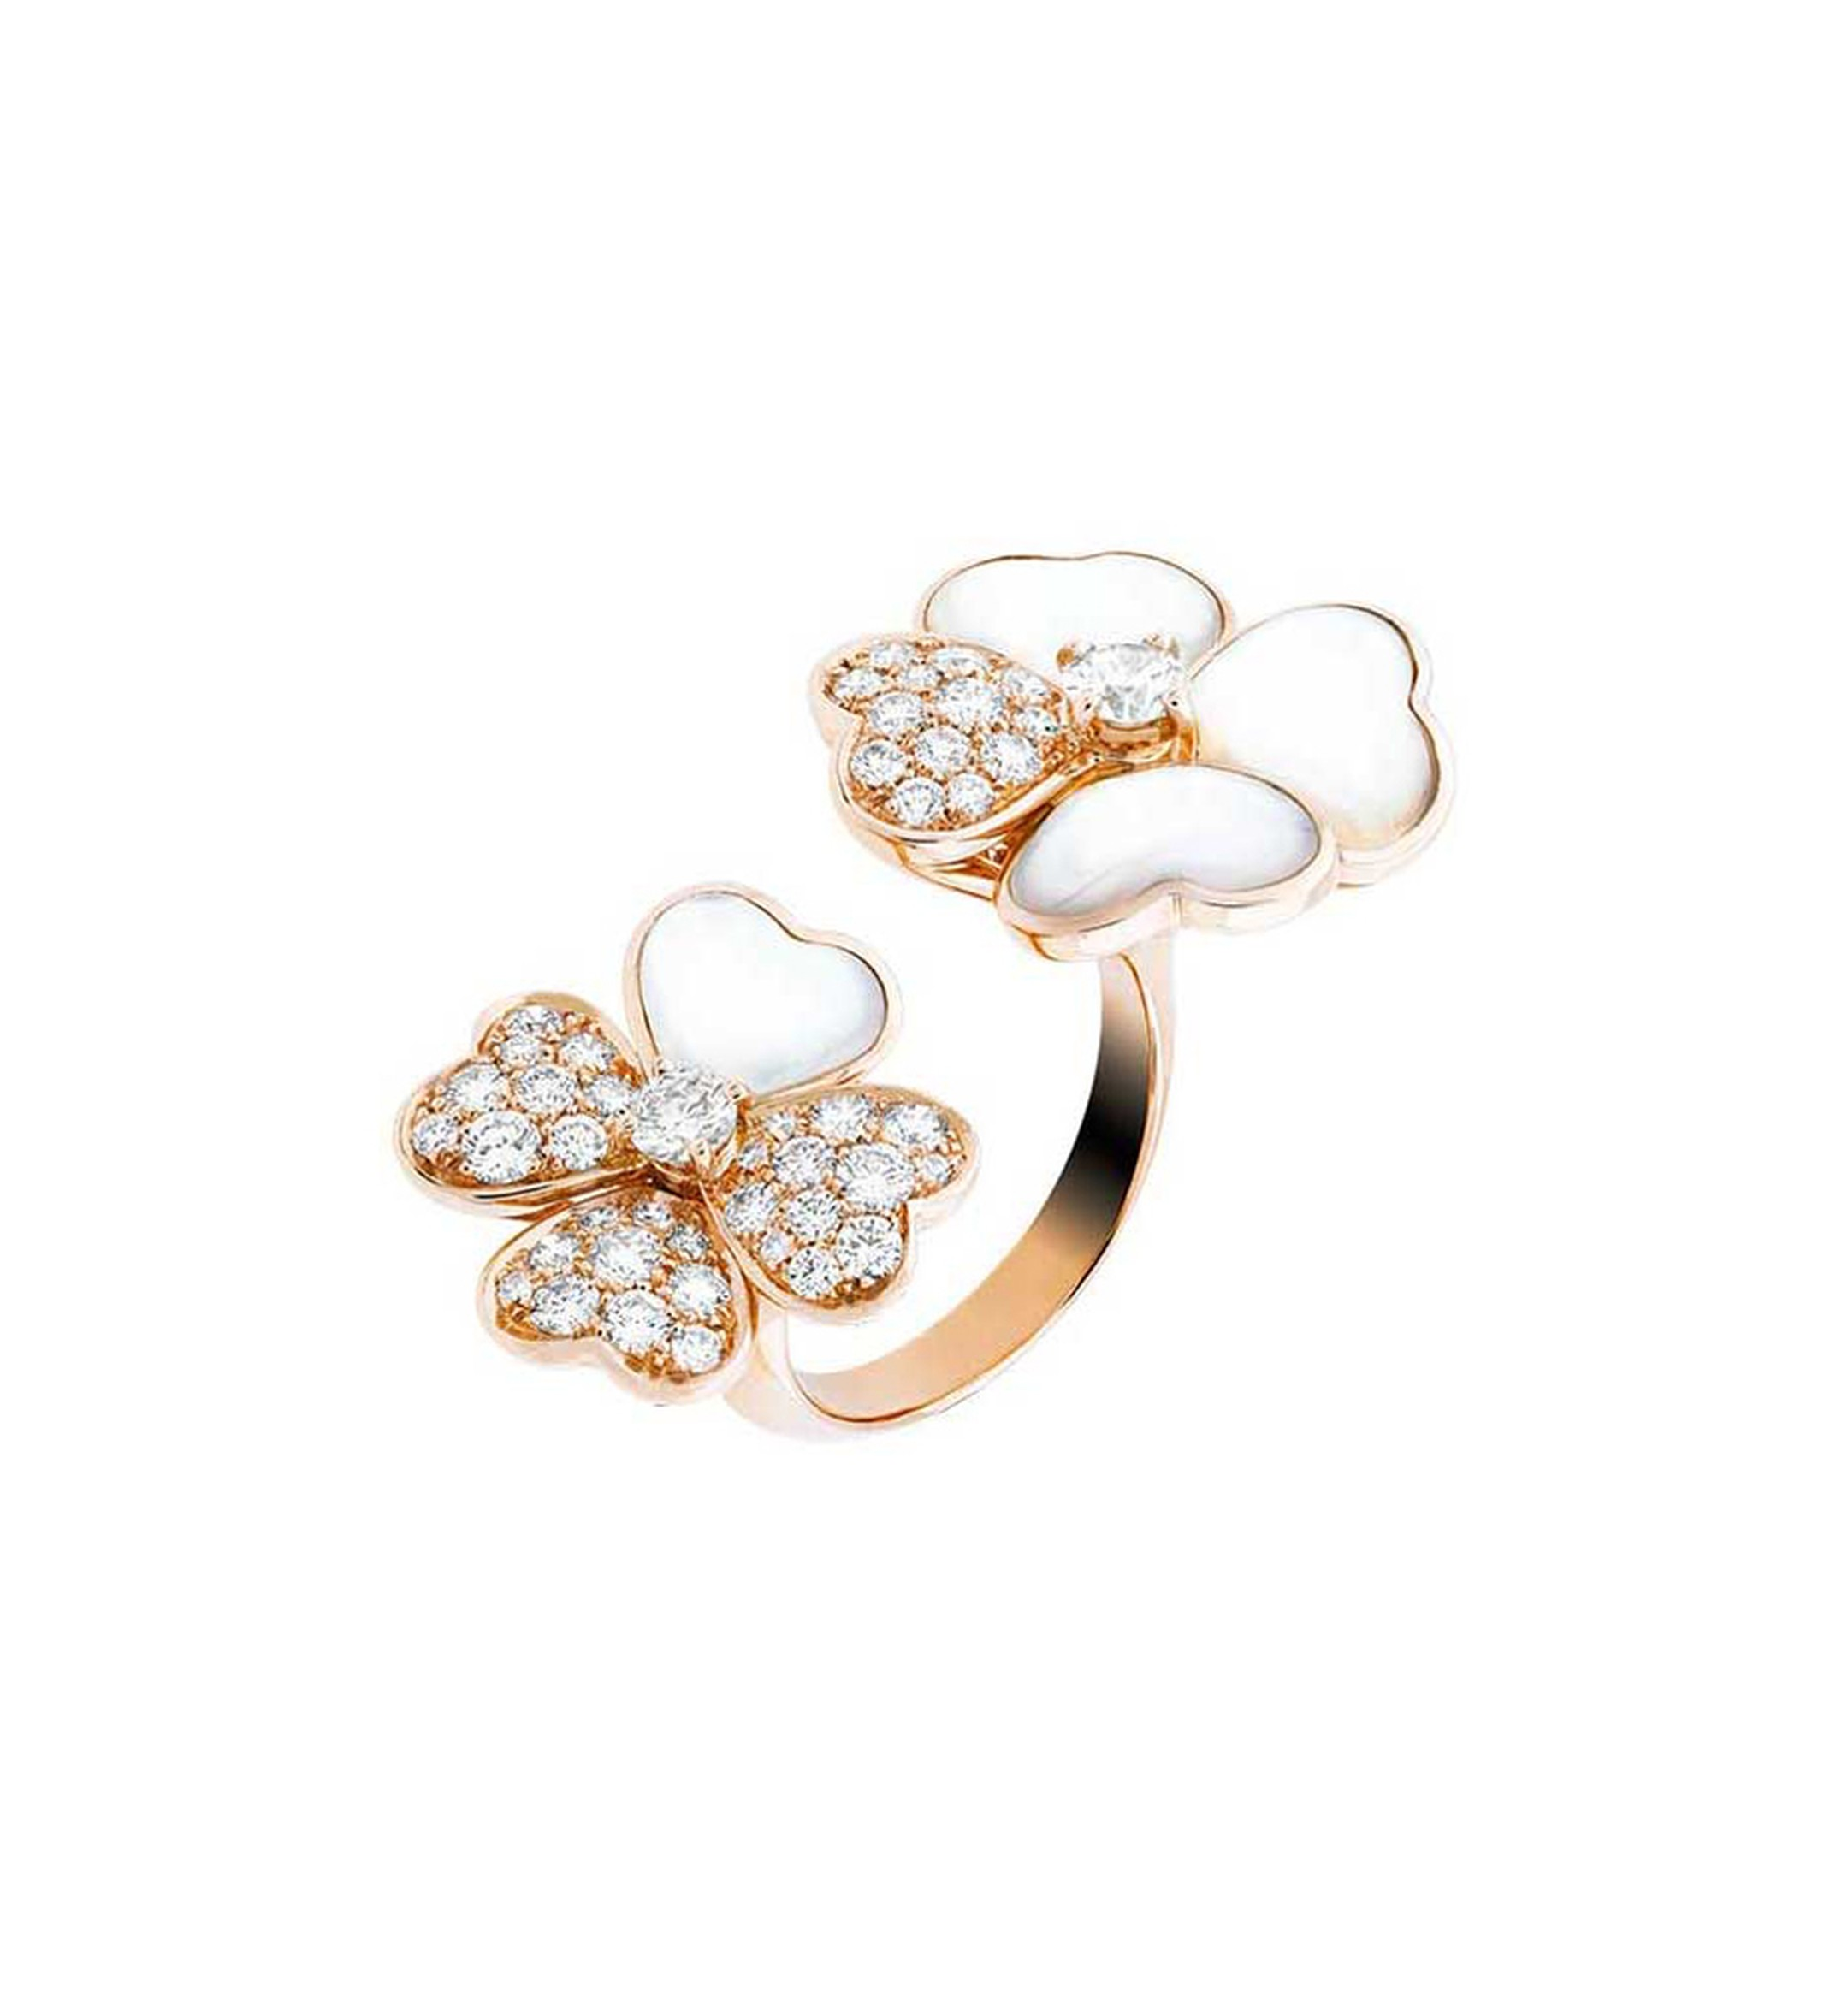 Van Cleef & Arpels Cosmos Between the Finger ring in rose gold with brilliant-cut diamond buds surrounded by white mother-of-pearl and diamond petals